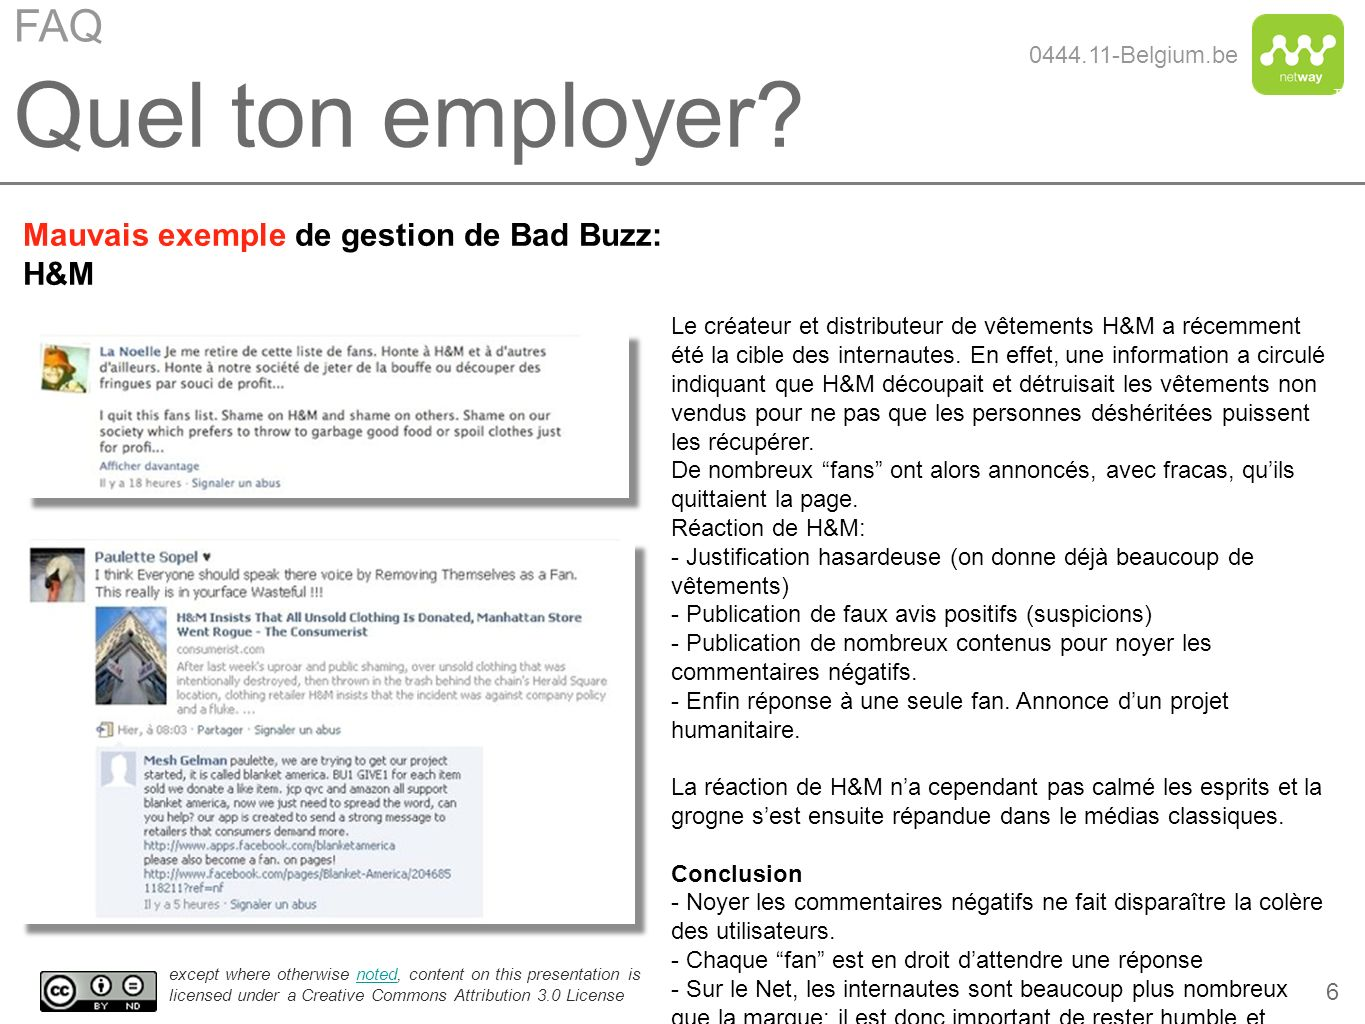 Quel ton employer FAQ Mauvais exemple de gestion de Bad Buzz: H&M